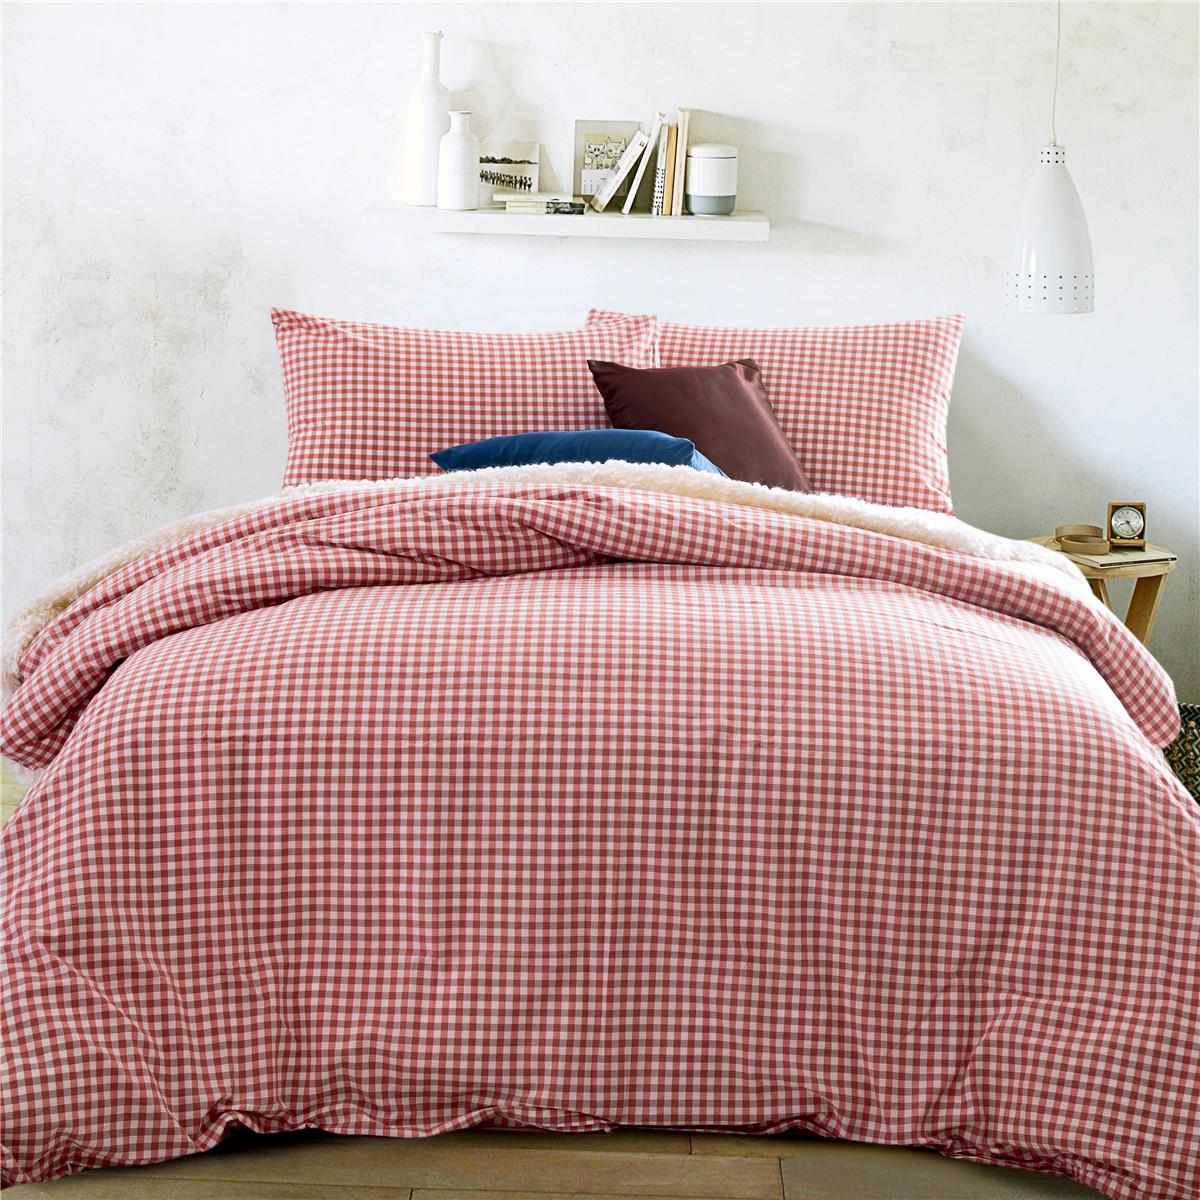 red duvet brushed product and main cover cotton reversible pillowcase hartford set